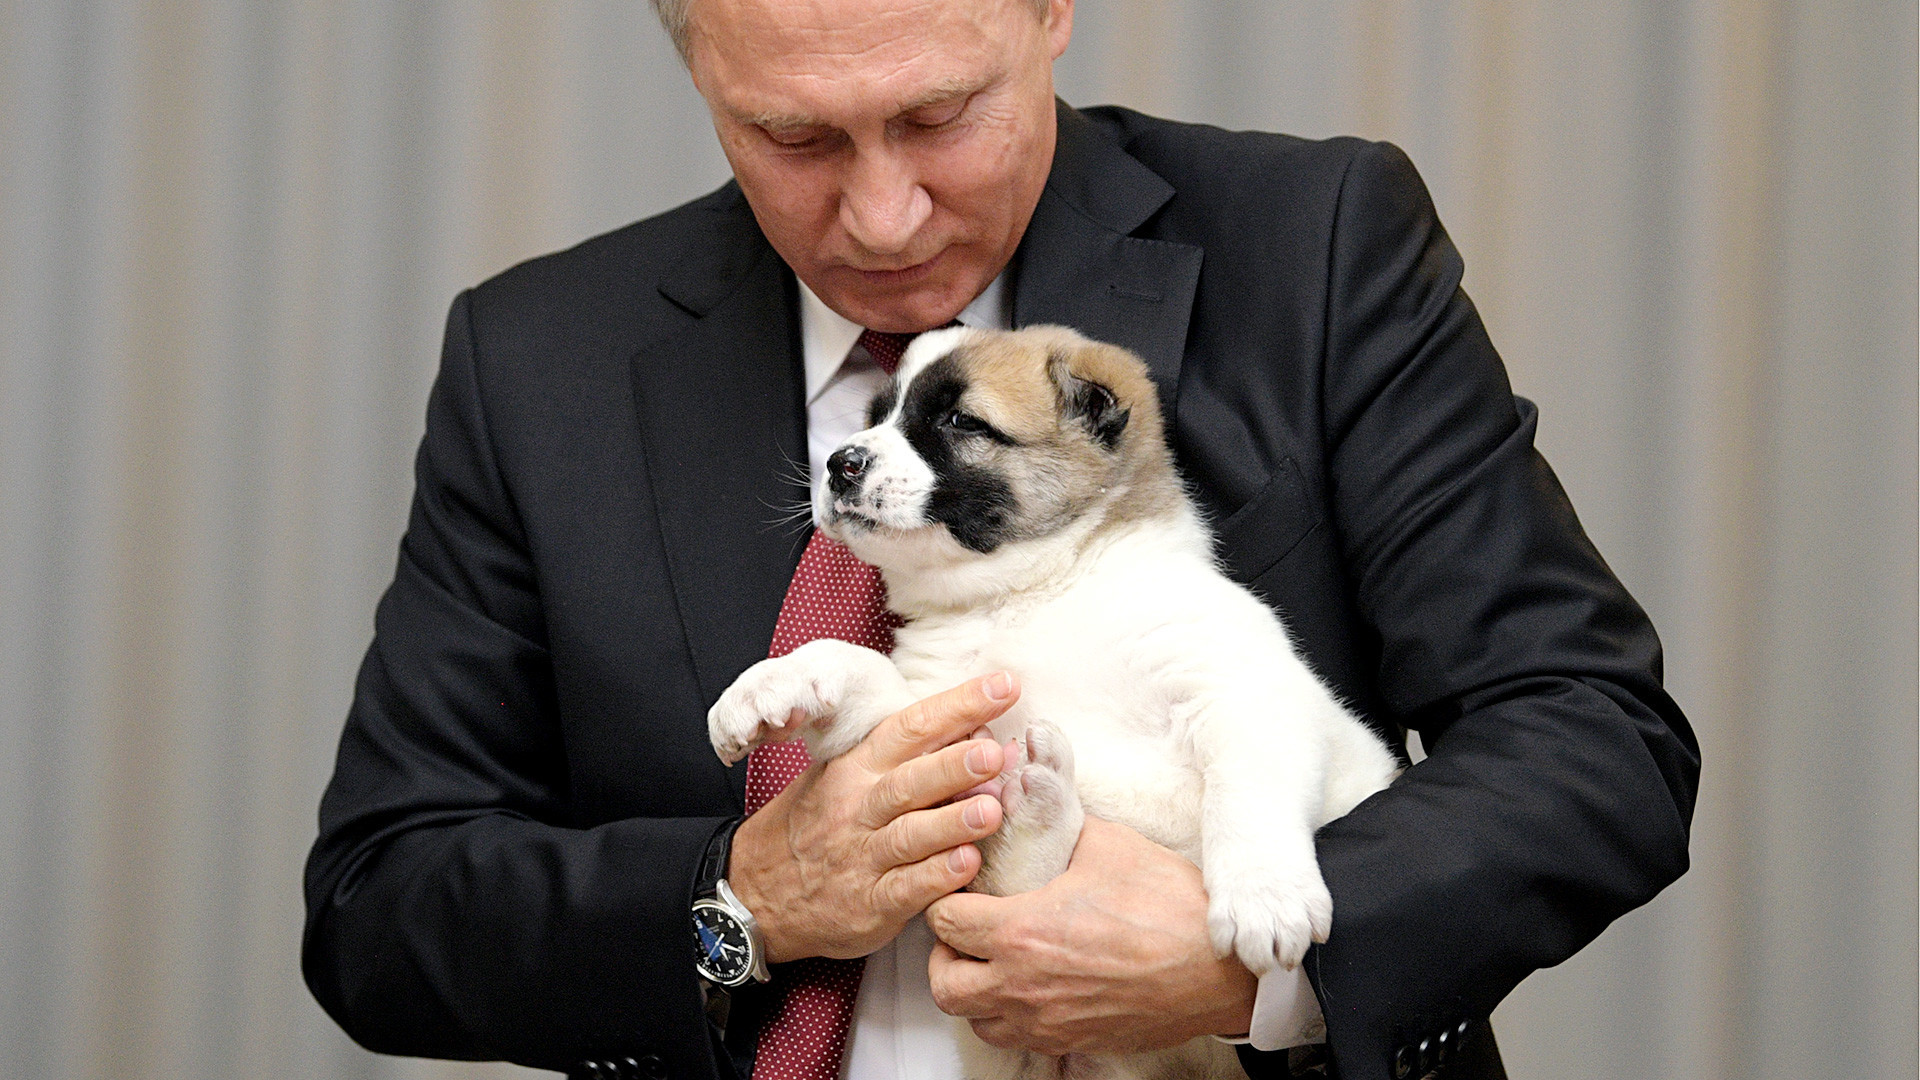 Russia's President Vladimir Putin holds the puppy given to him by Turkmenistan's President Gurbanguly Berdimuhamedow for his birthday.